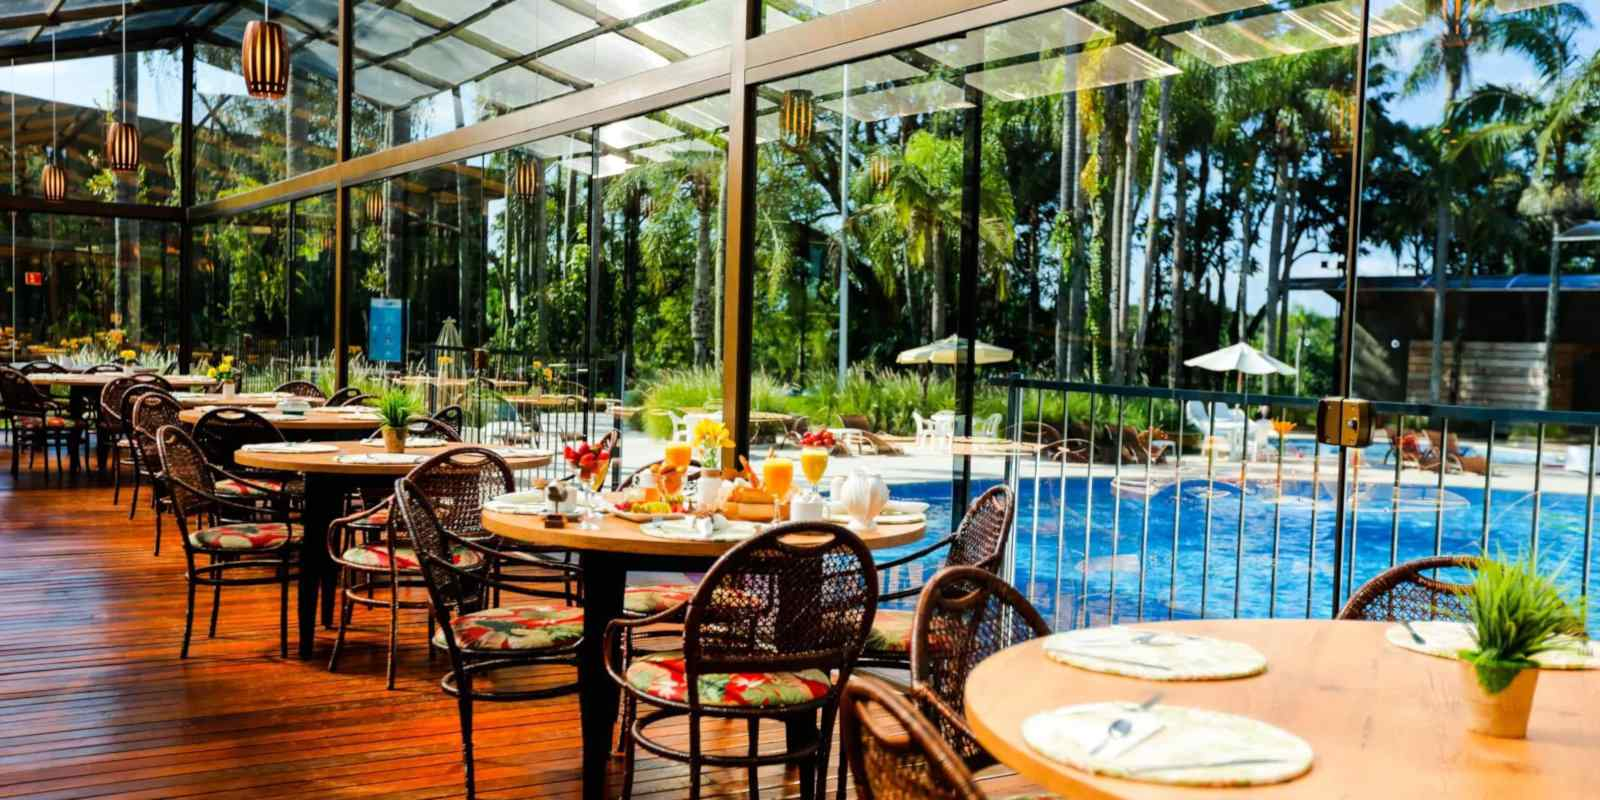 Gay friendly accommodation near Iguazu Falls - the Vivaz Cataratas Hotel Resort has a lovely poolside restaurant.